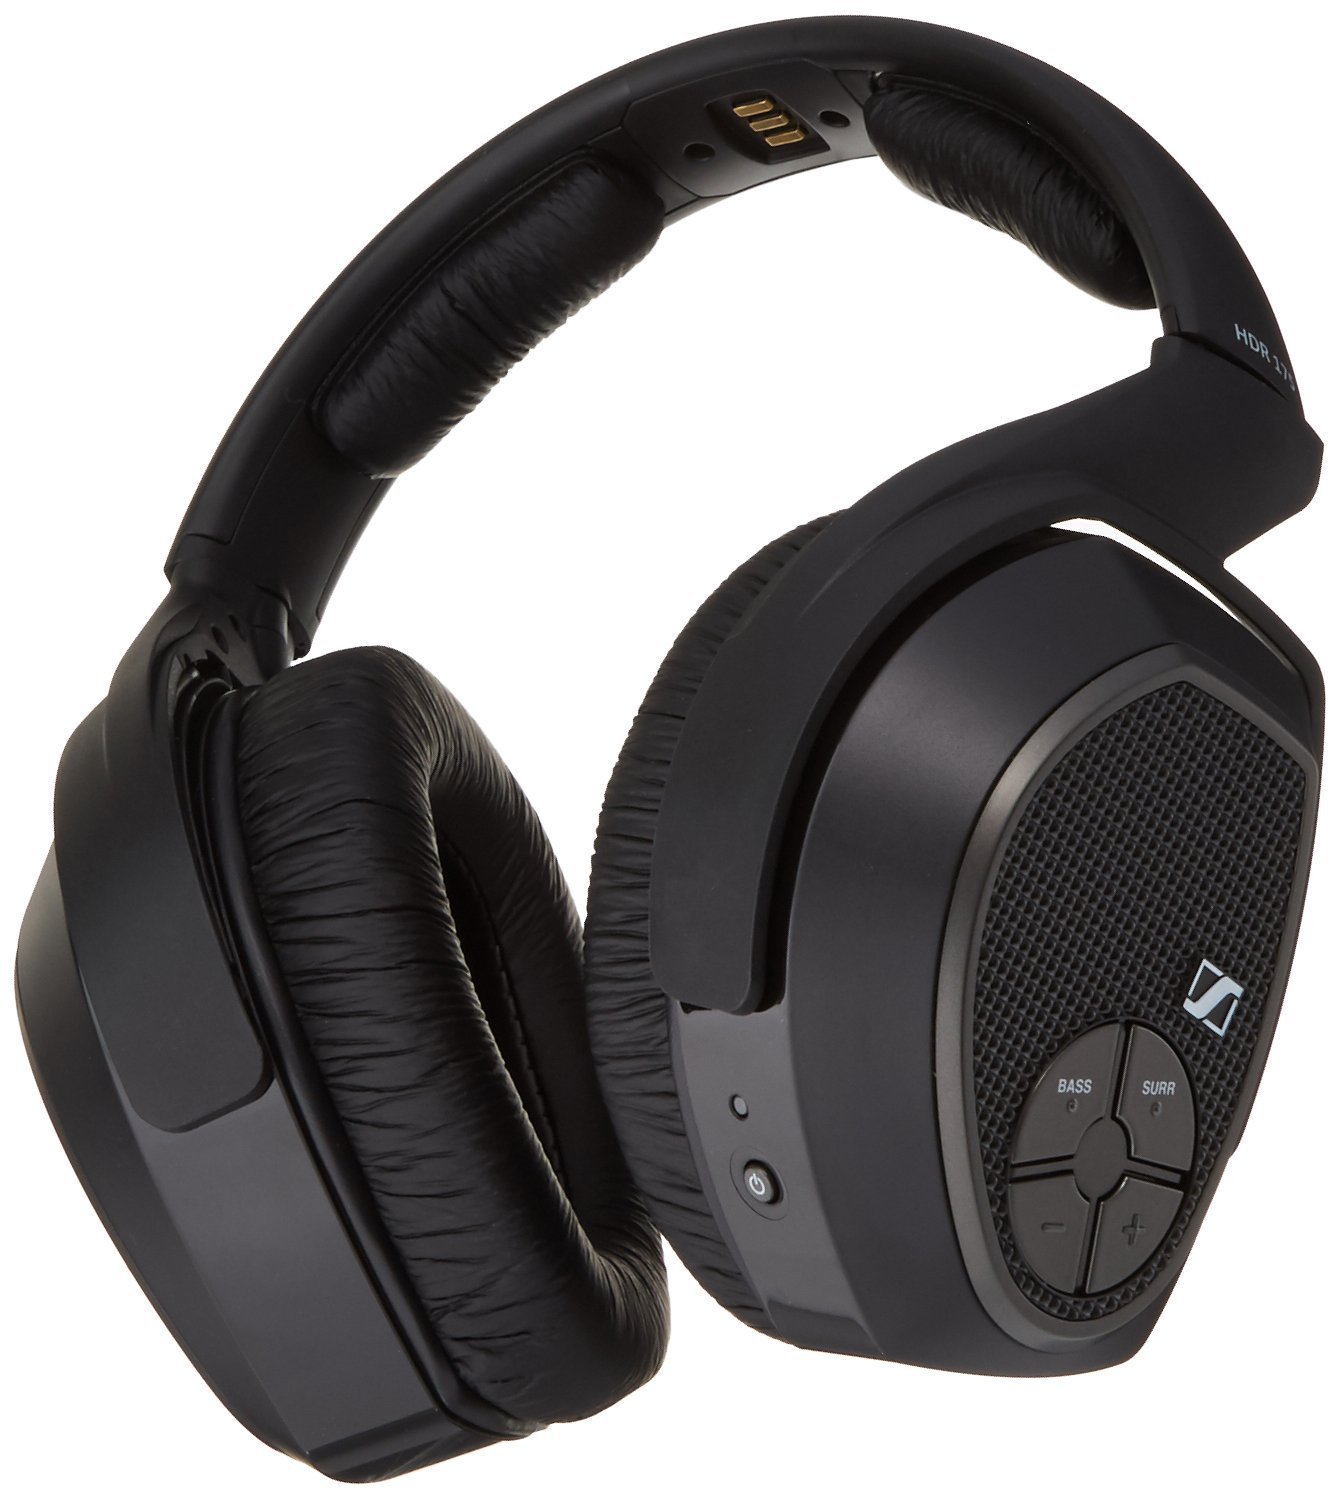 dd1bd68c349 Amazon.com: Sennheiser HDR 175 Accessory RF Wireless Headphone for RS 175  System: Home Audio & Theater